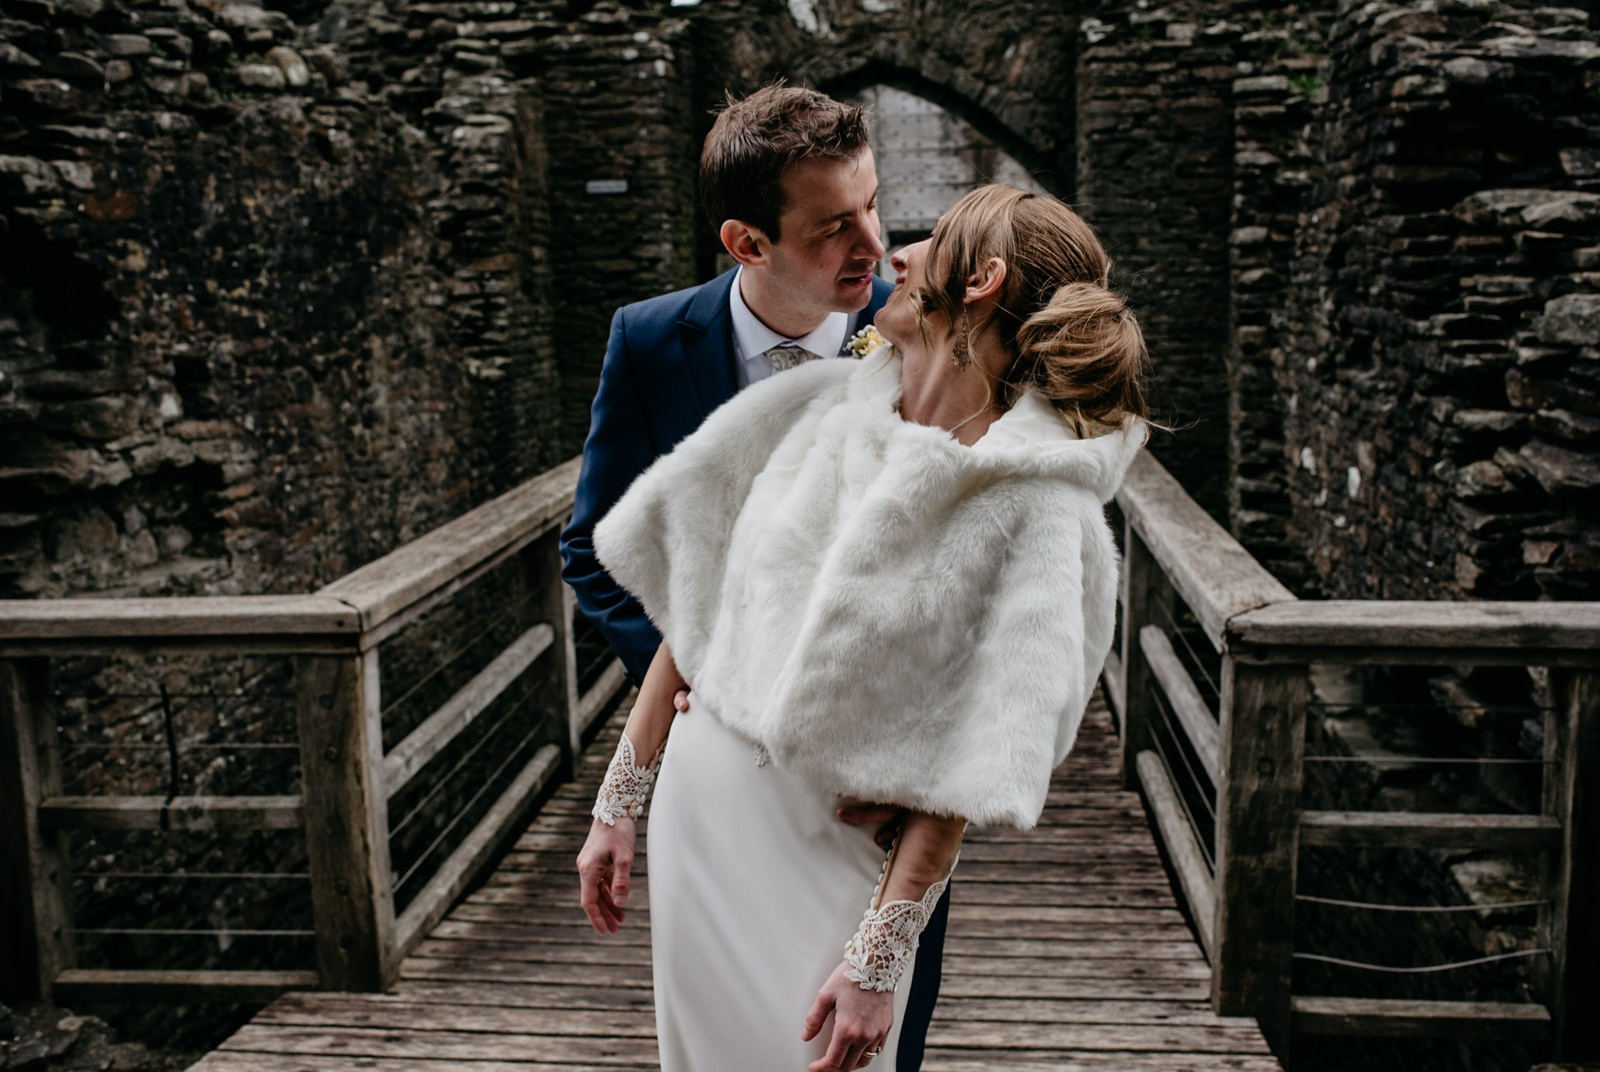 Stylish bride and groom at Caerphilly Castle wedding